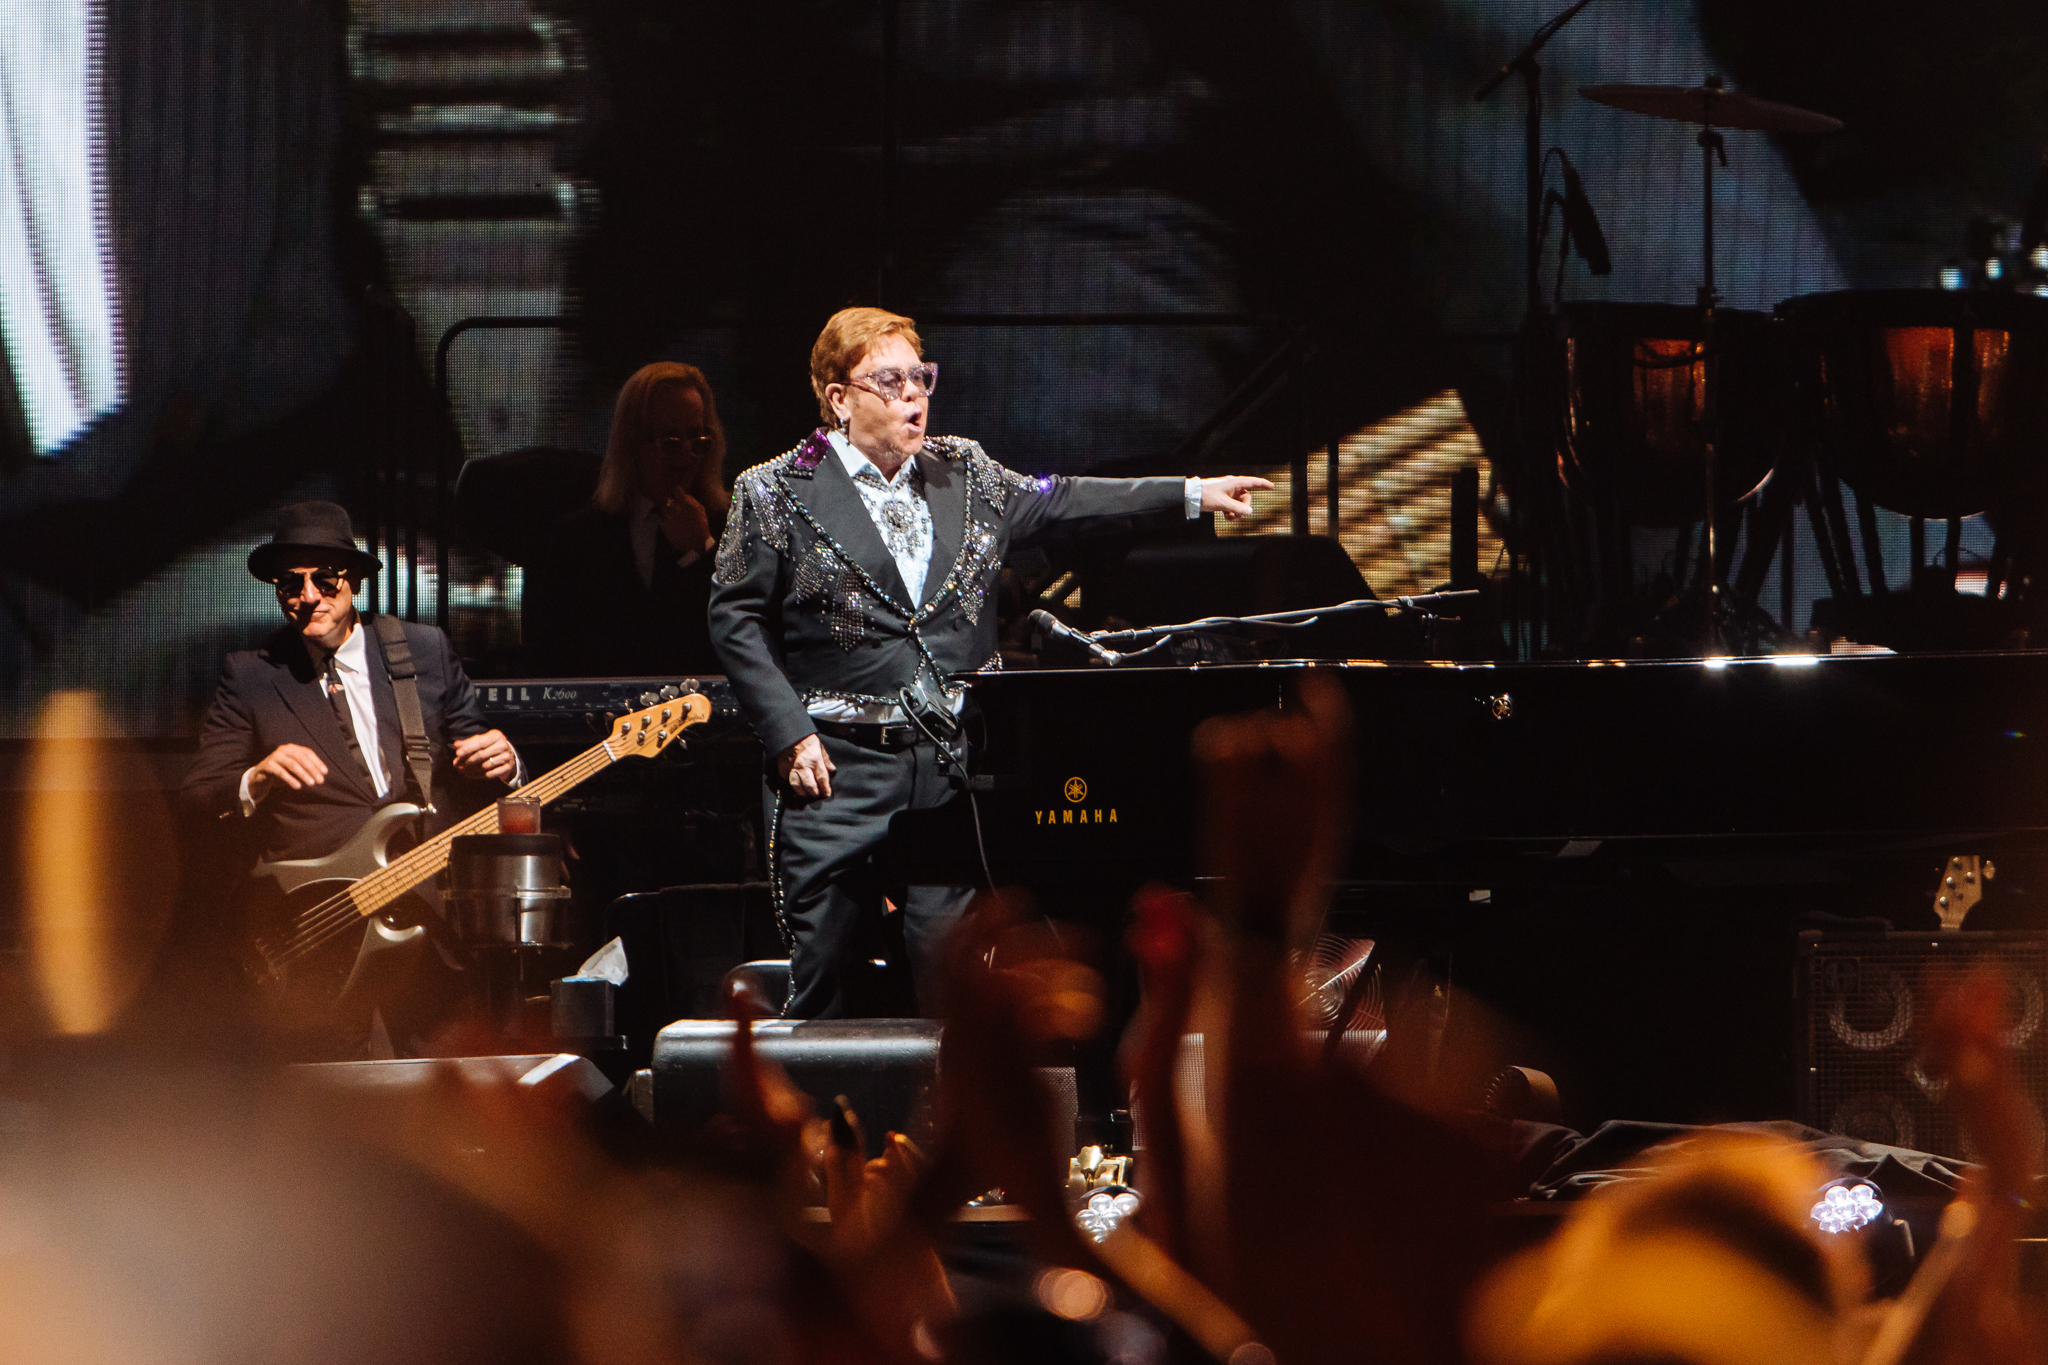 Elton John - Sunshine Coast Stadium